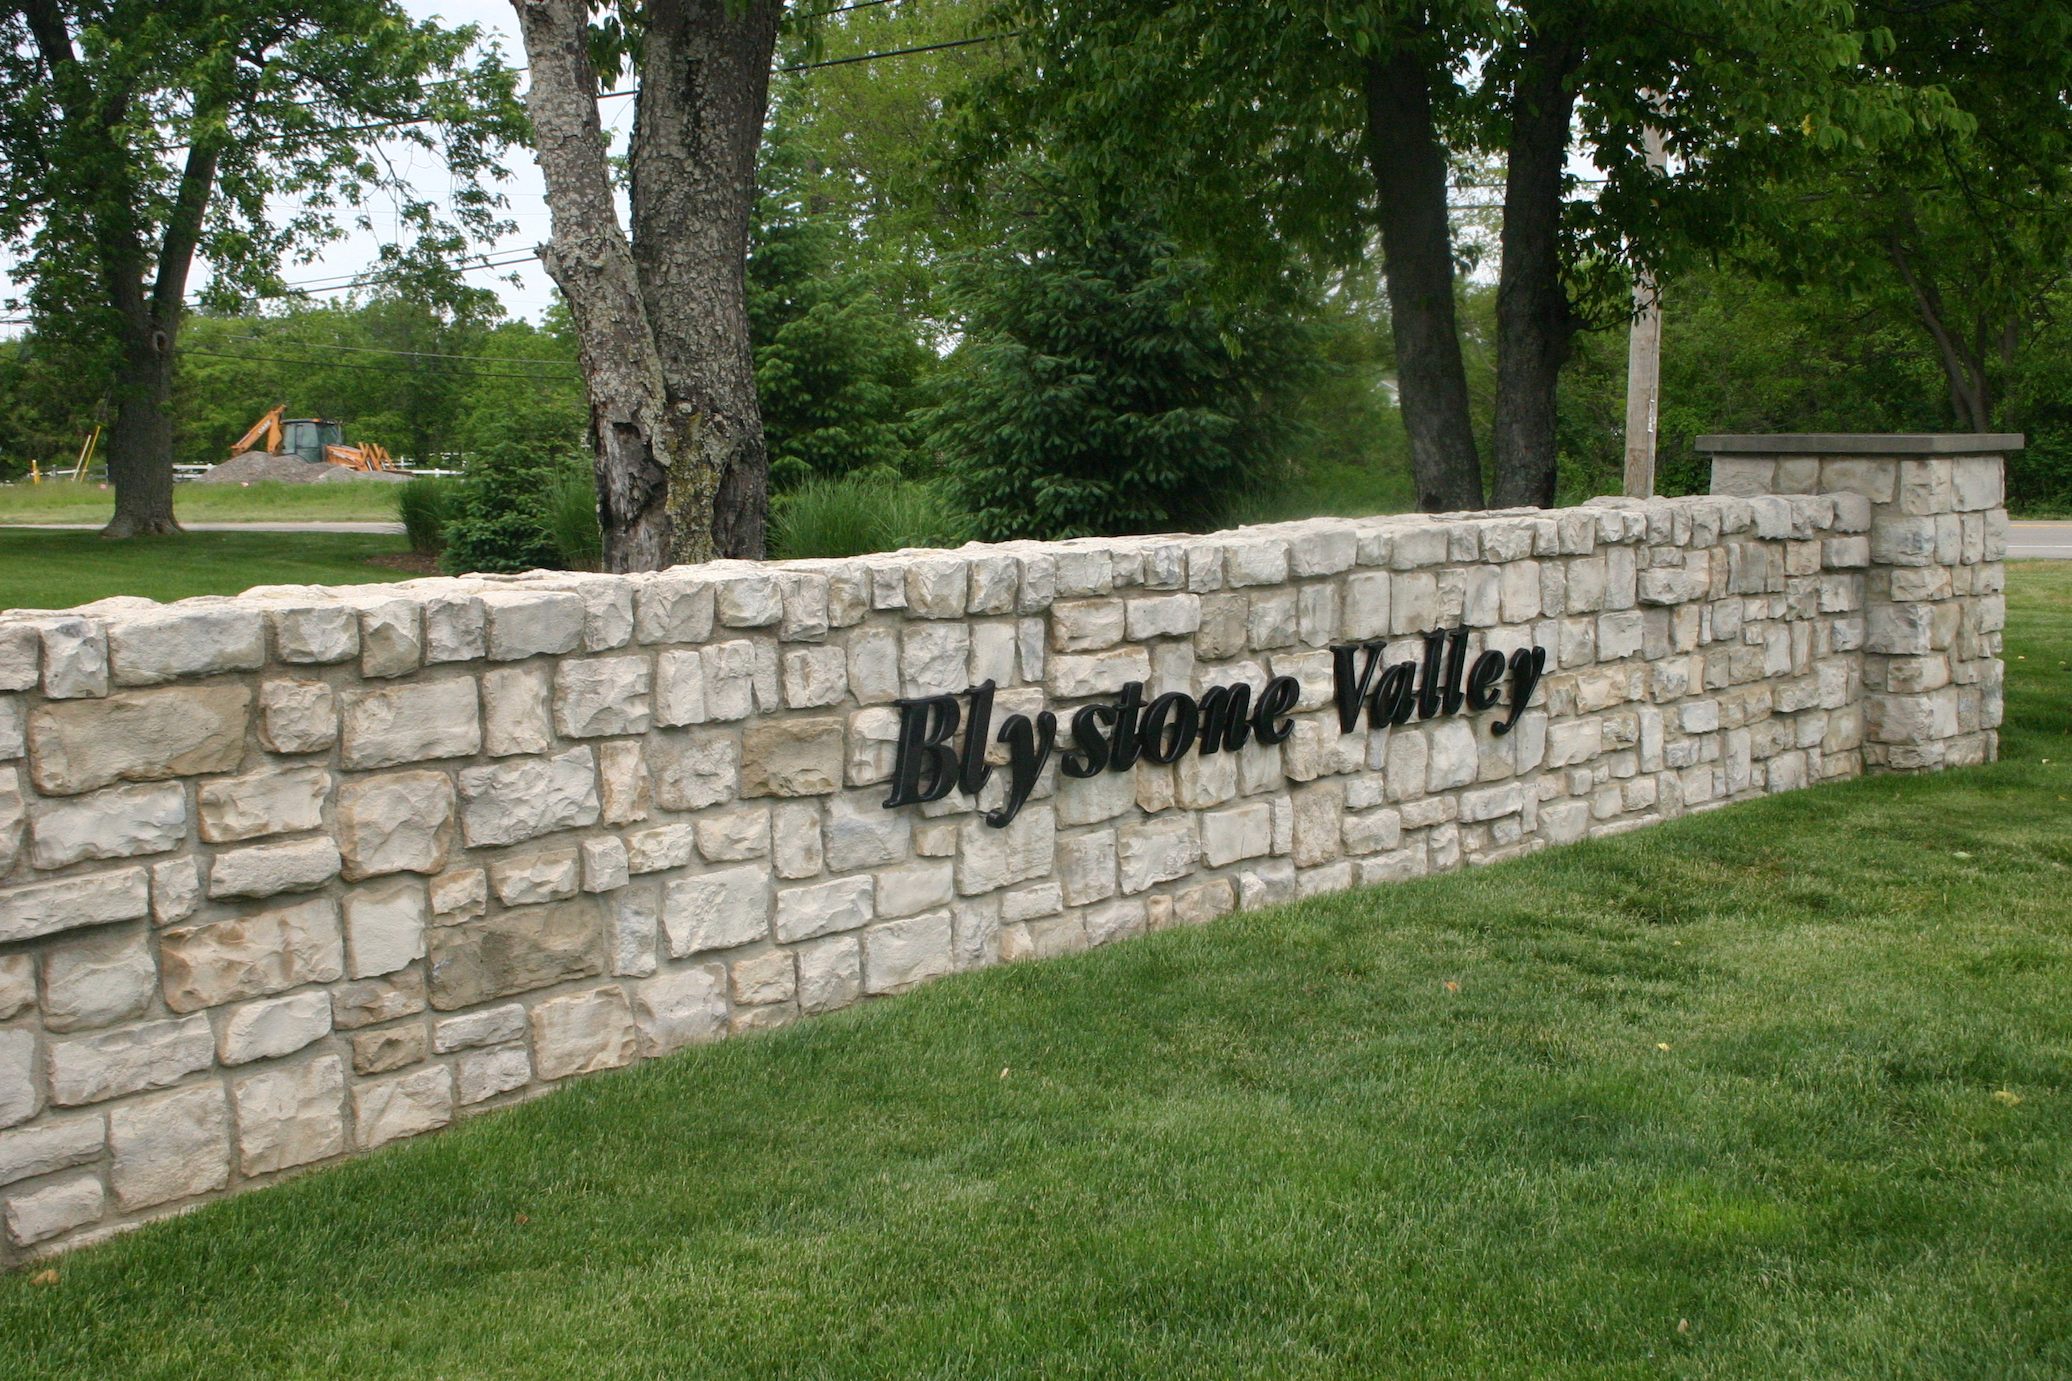 Blystone Valley Homes for Sale & Blystone Valley Real Estate